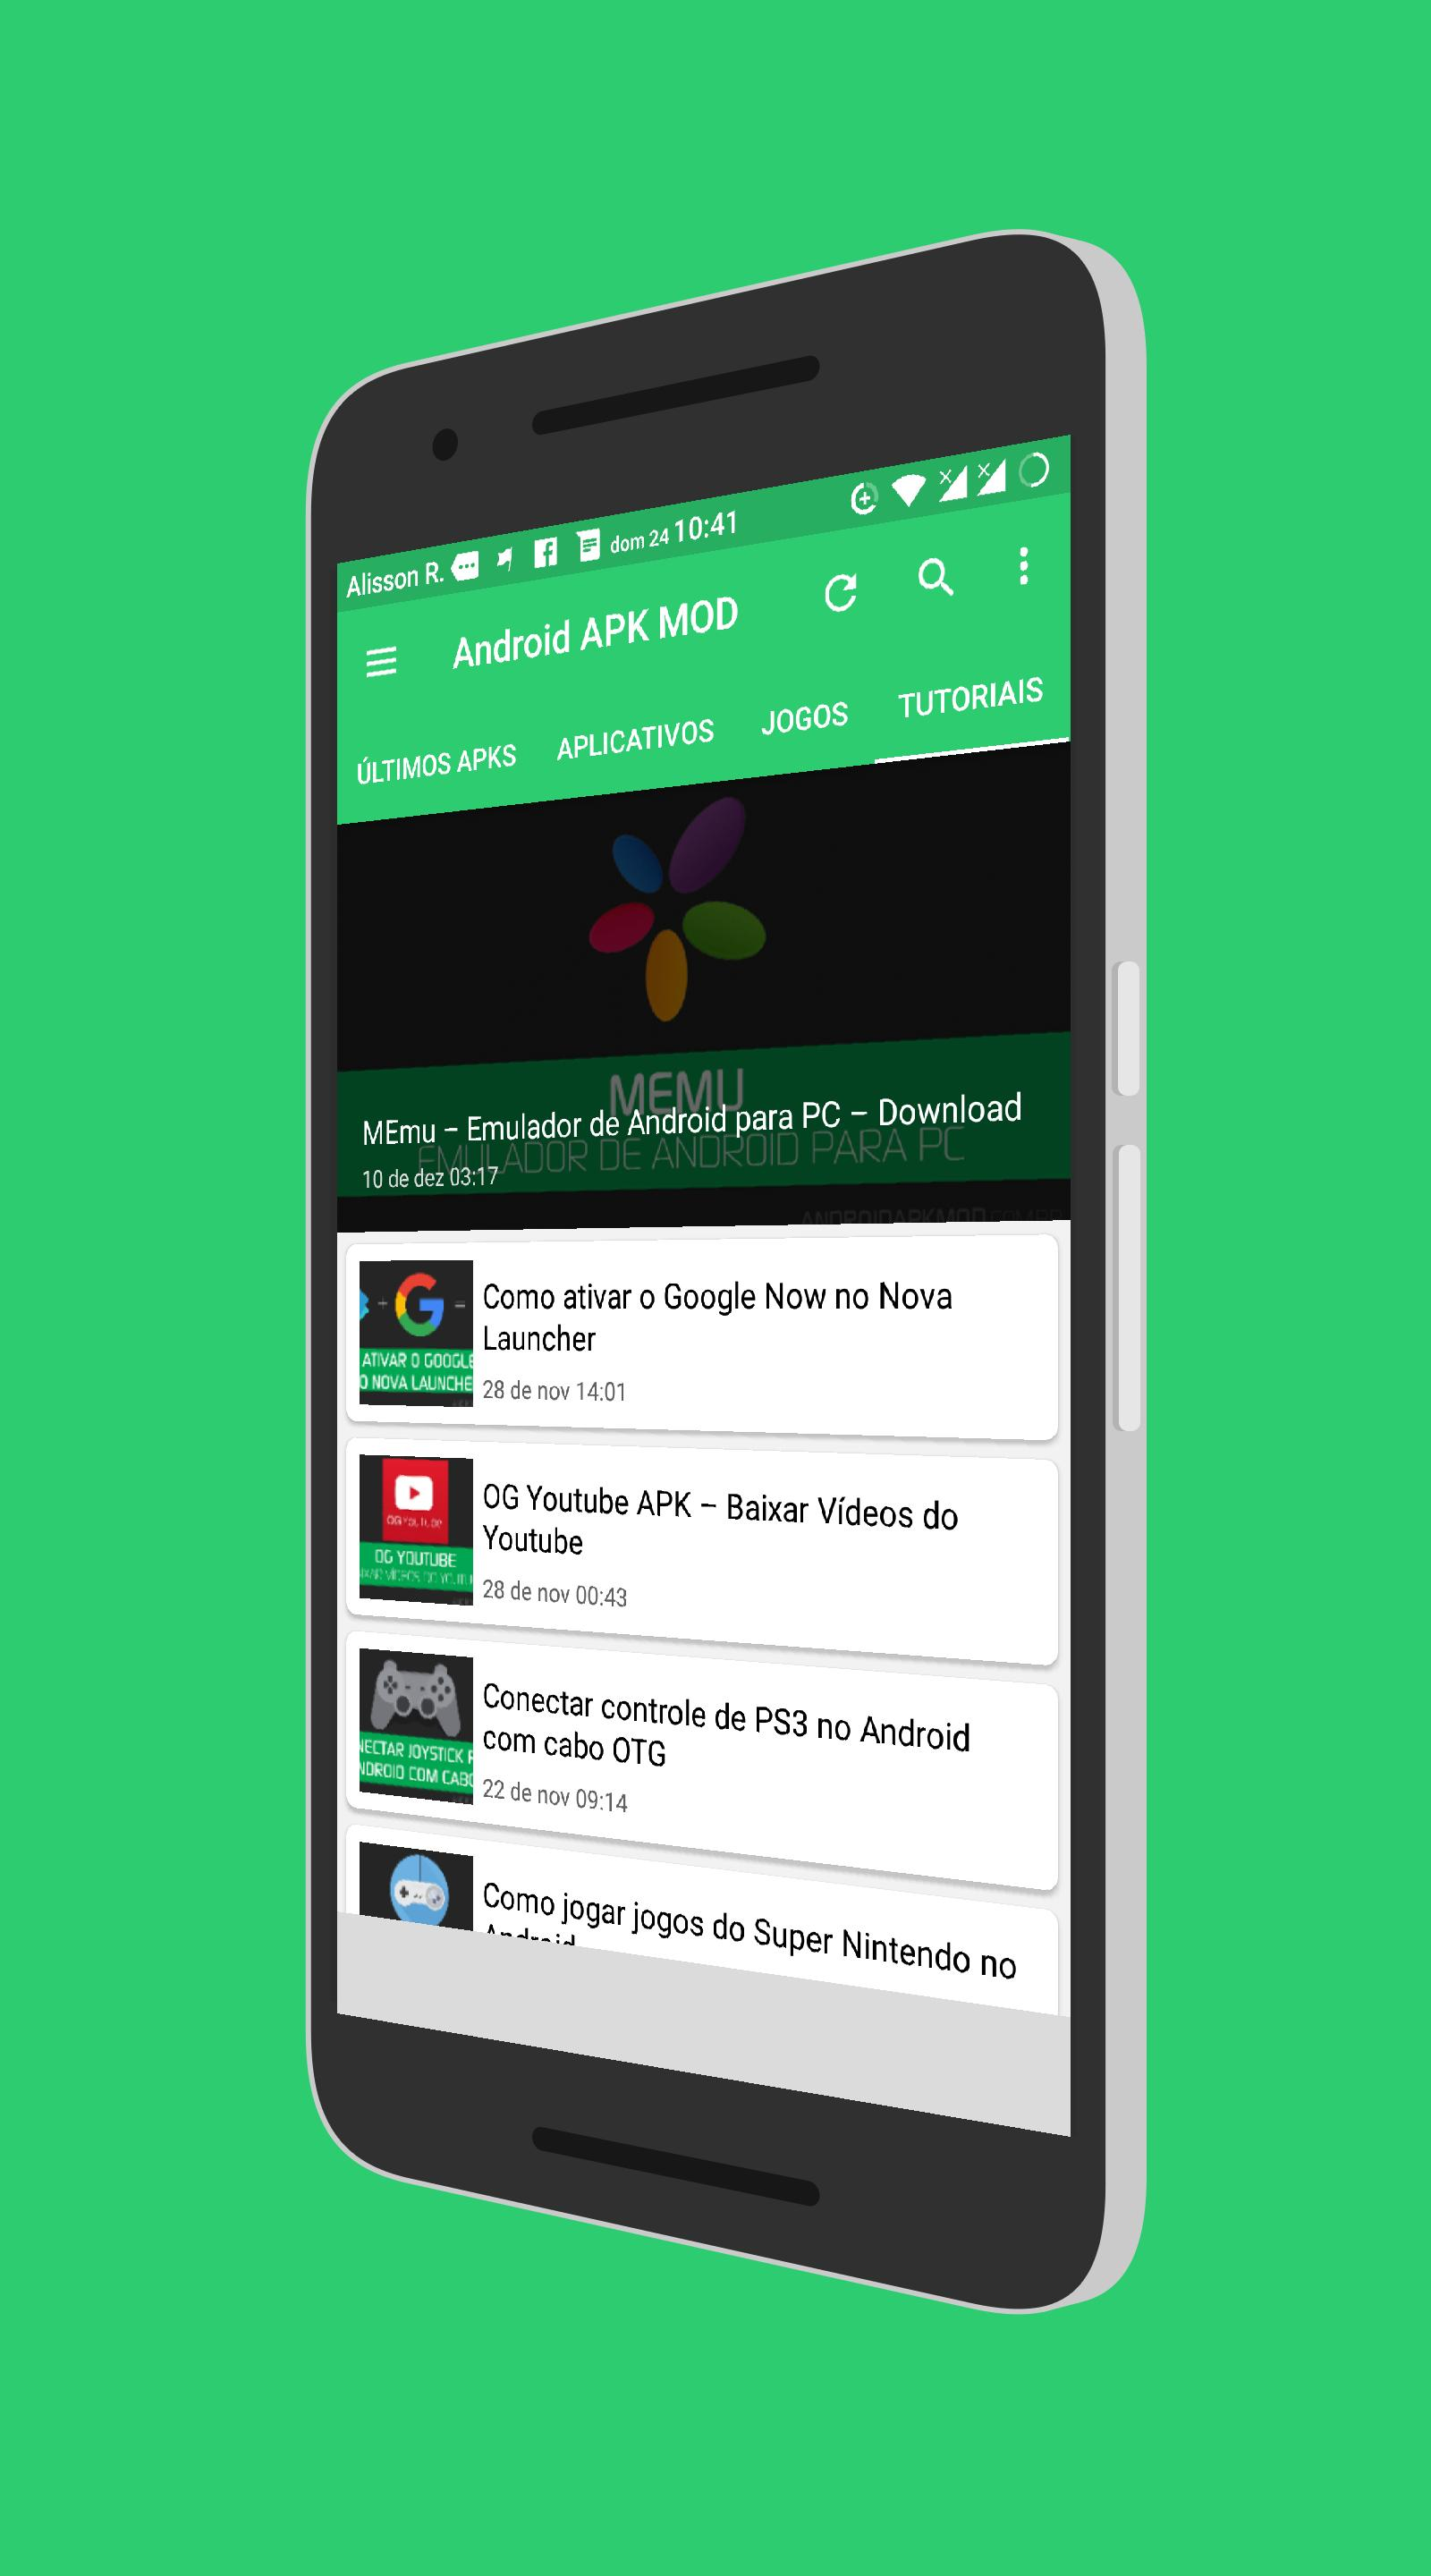 Android APK MOD for Android - APK Download